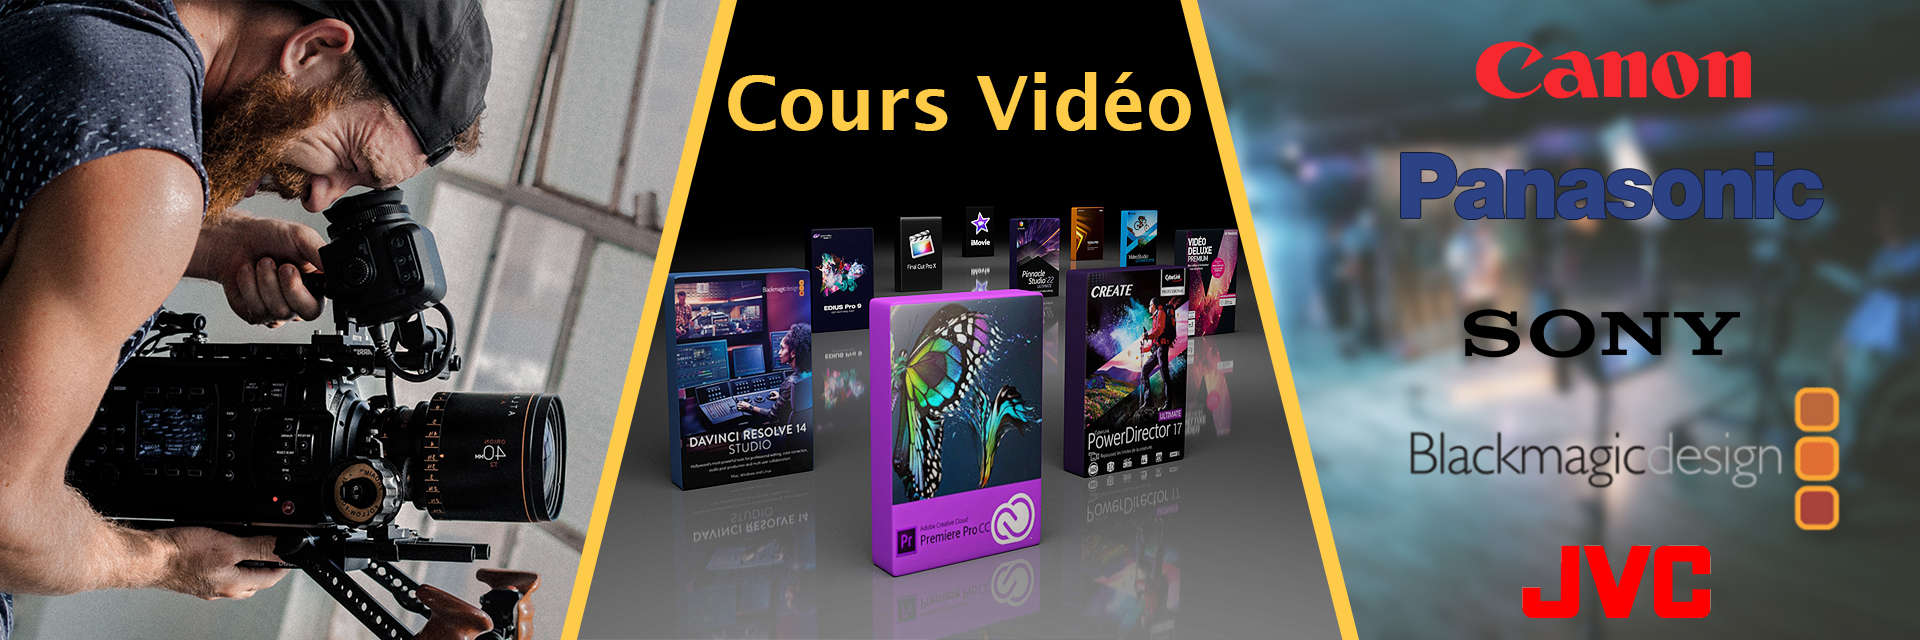 Cours Video PA FORMATION